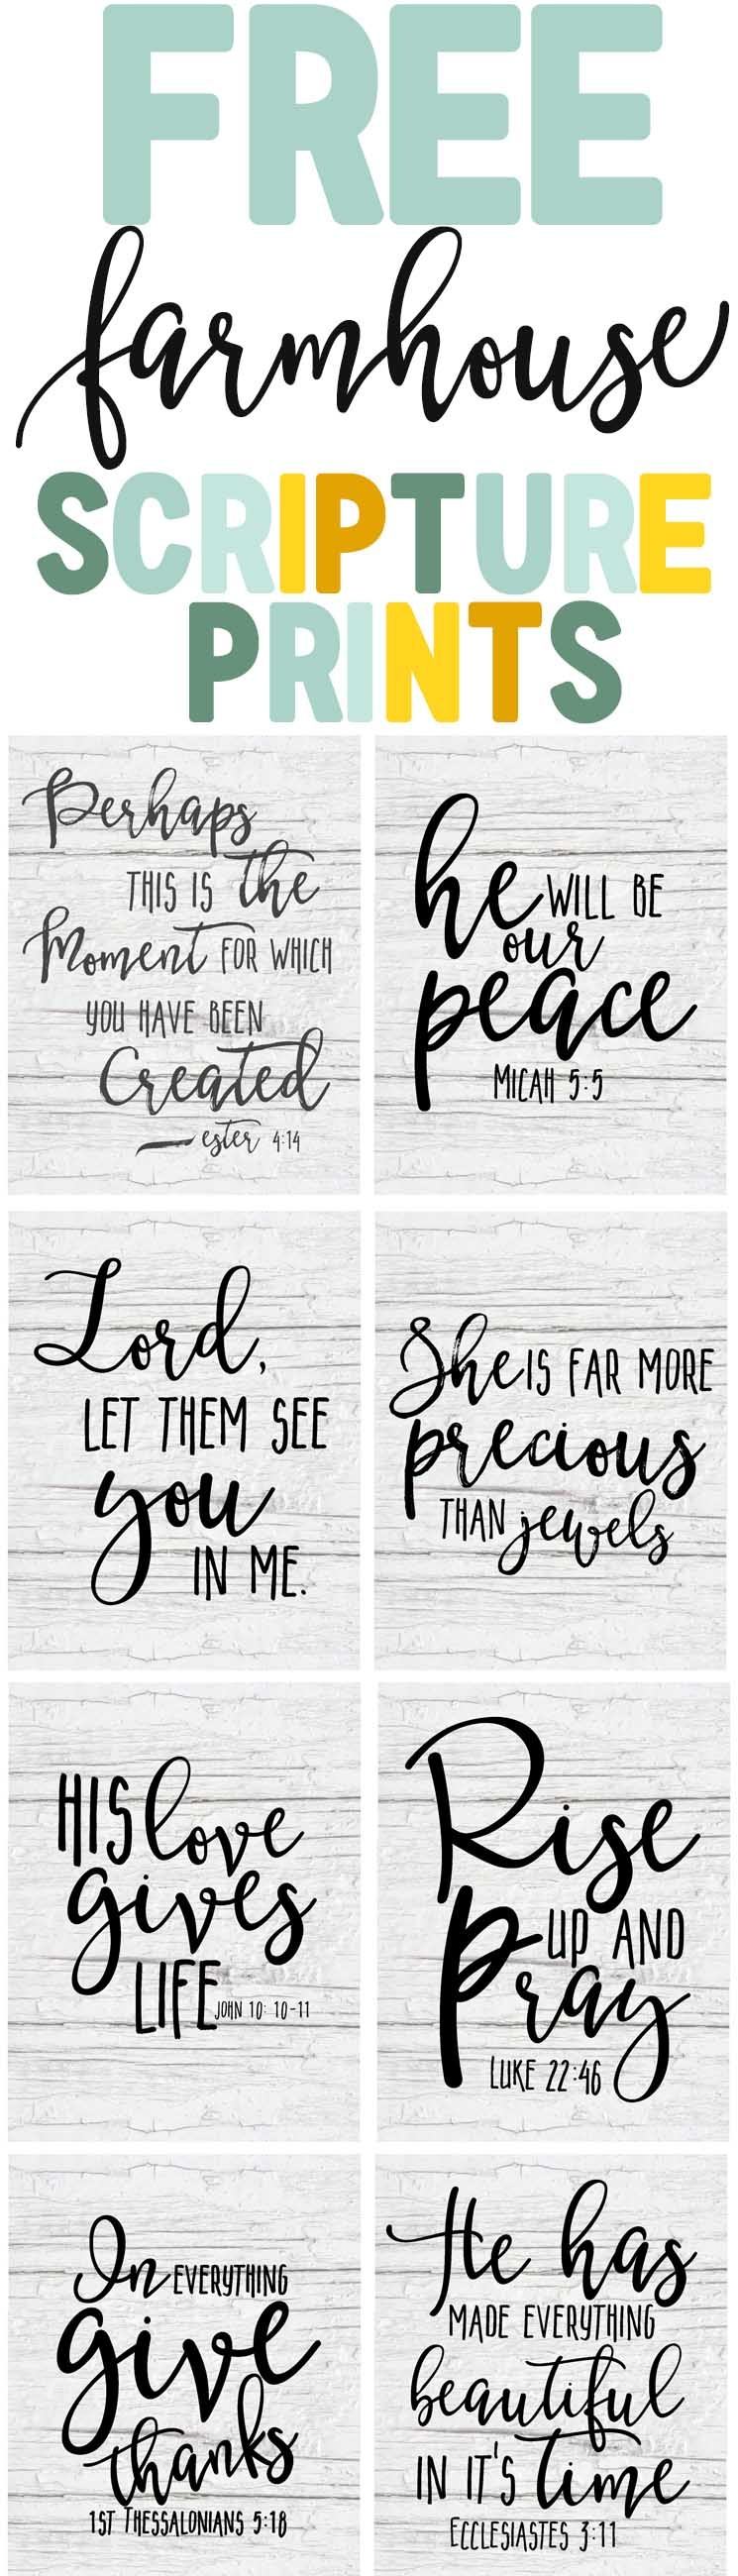 Free Farmhouse Scripture Printables - The Mountain View Cottage - Free Scripture Printables